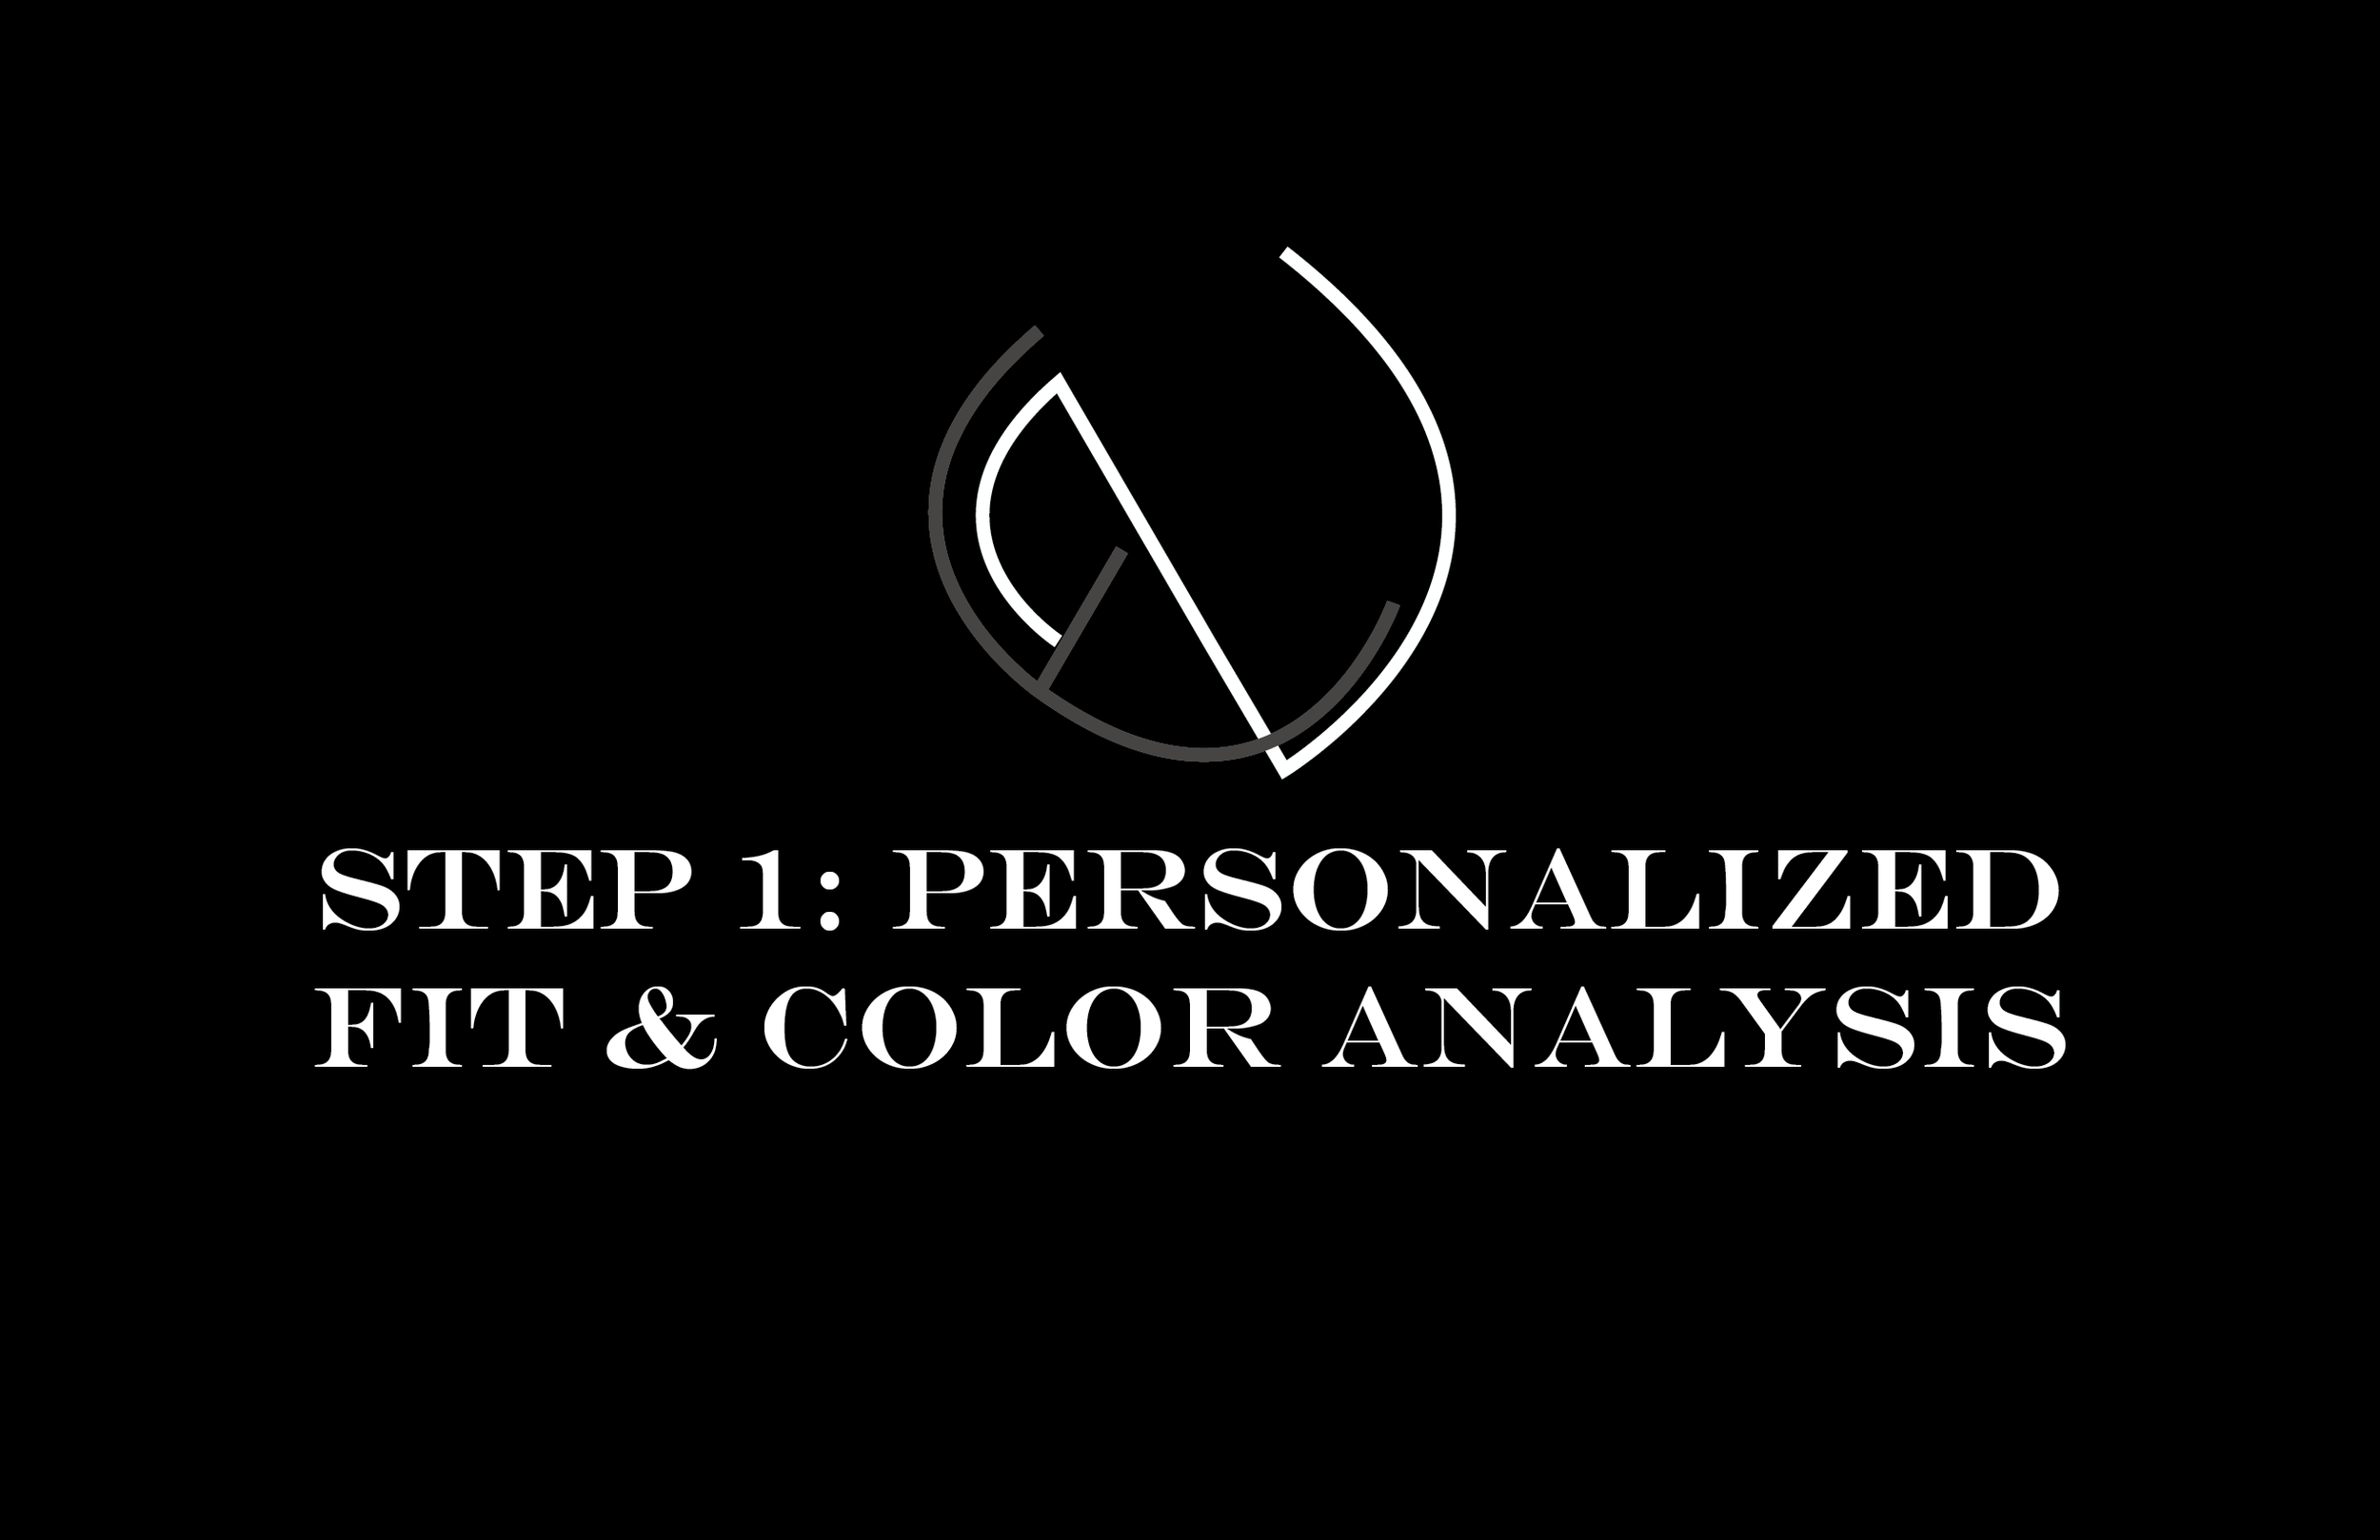 personalized fit and color2-01.png